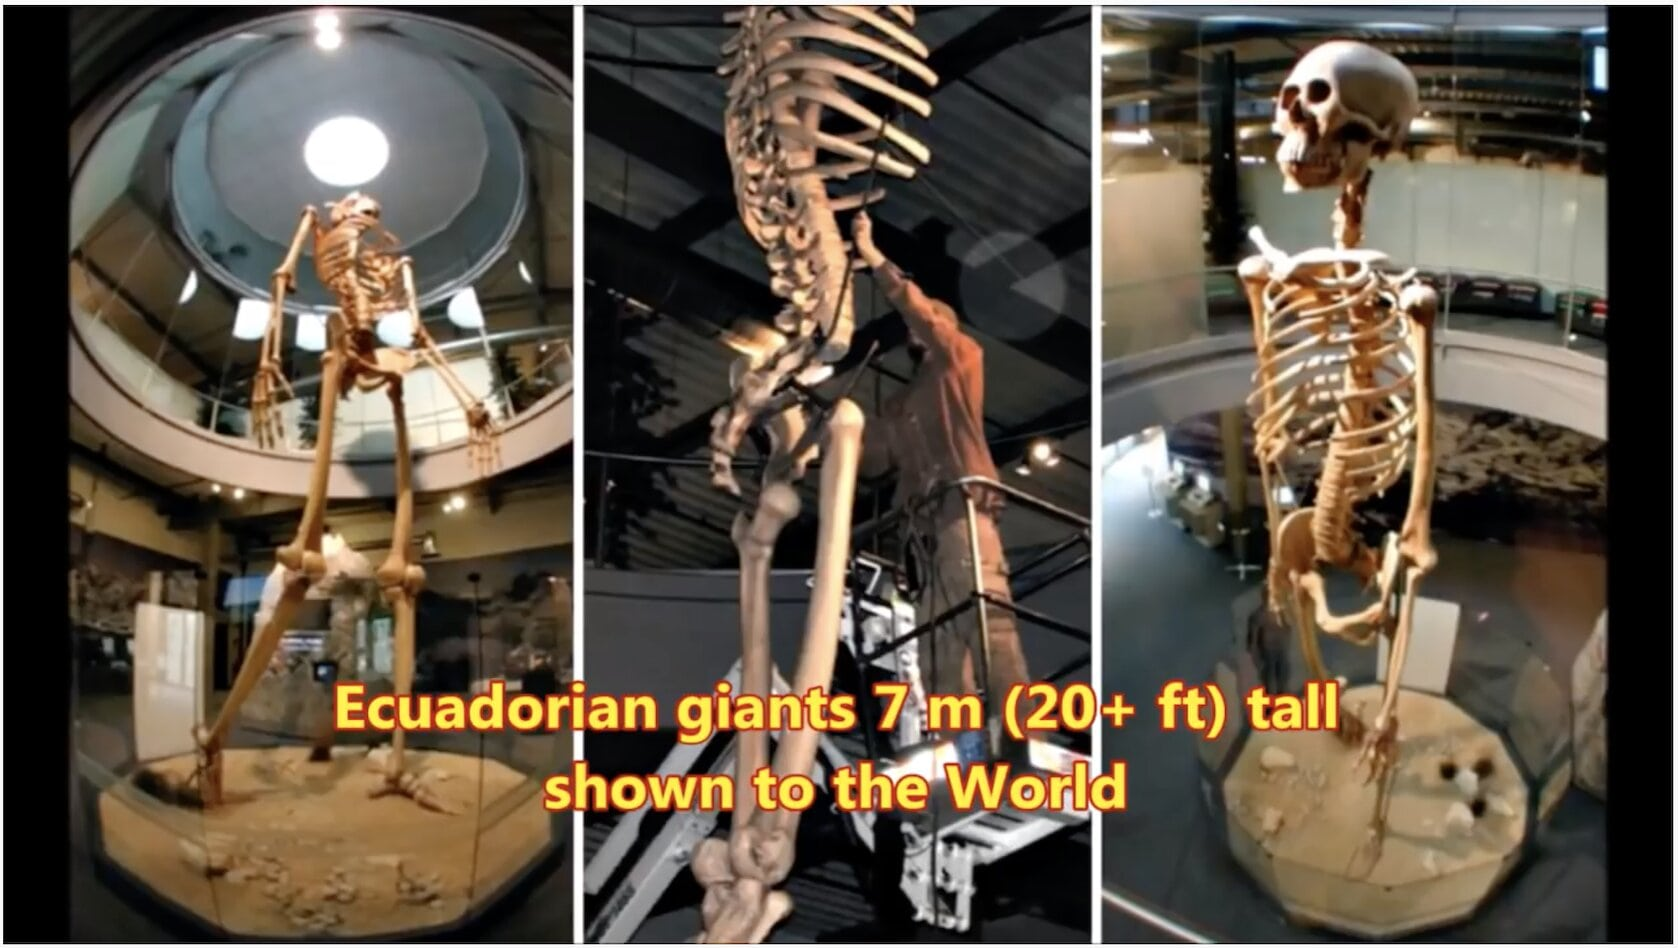 20+ Foot Tall Ancient Giant Skeletons On Exhibit for World to See ECUADOR GIANTS. | 2017